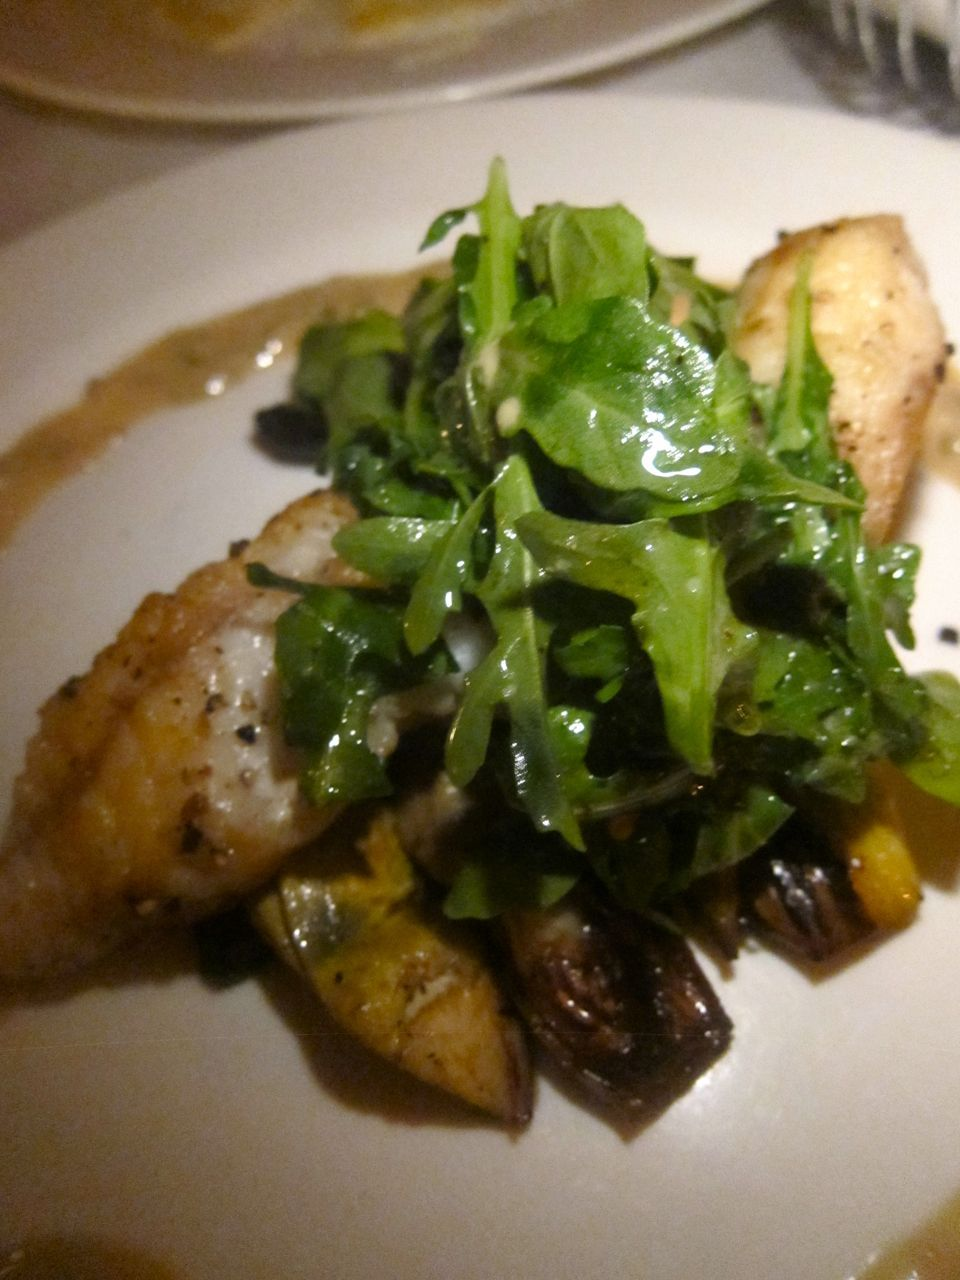 Lavagna's monkfish was just a tad overcooked but I like the arugula salad on top.